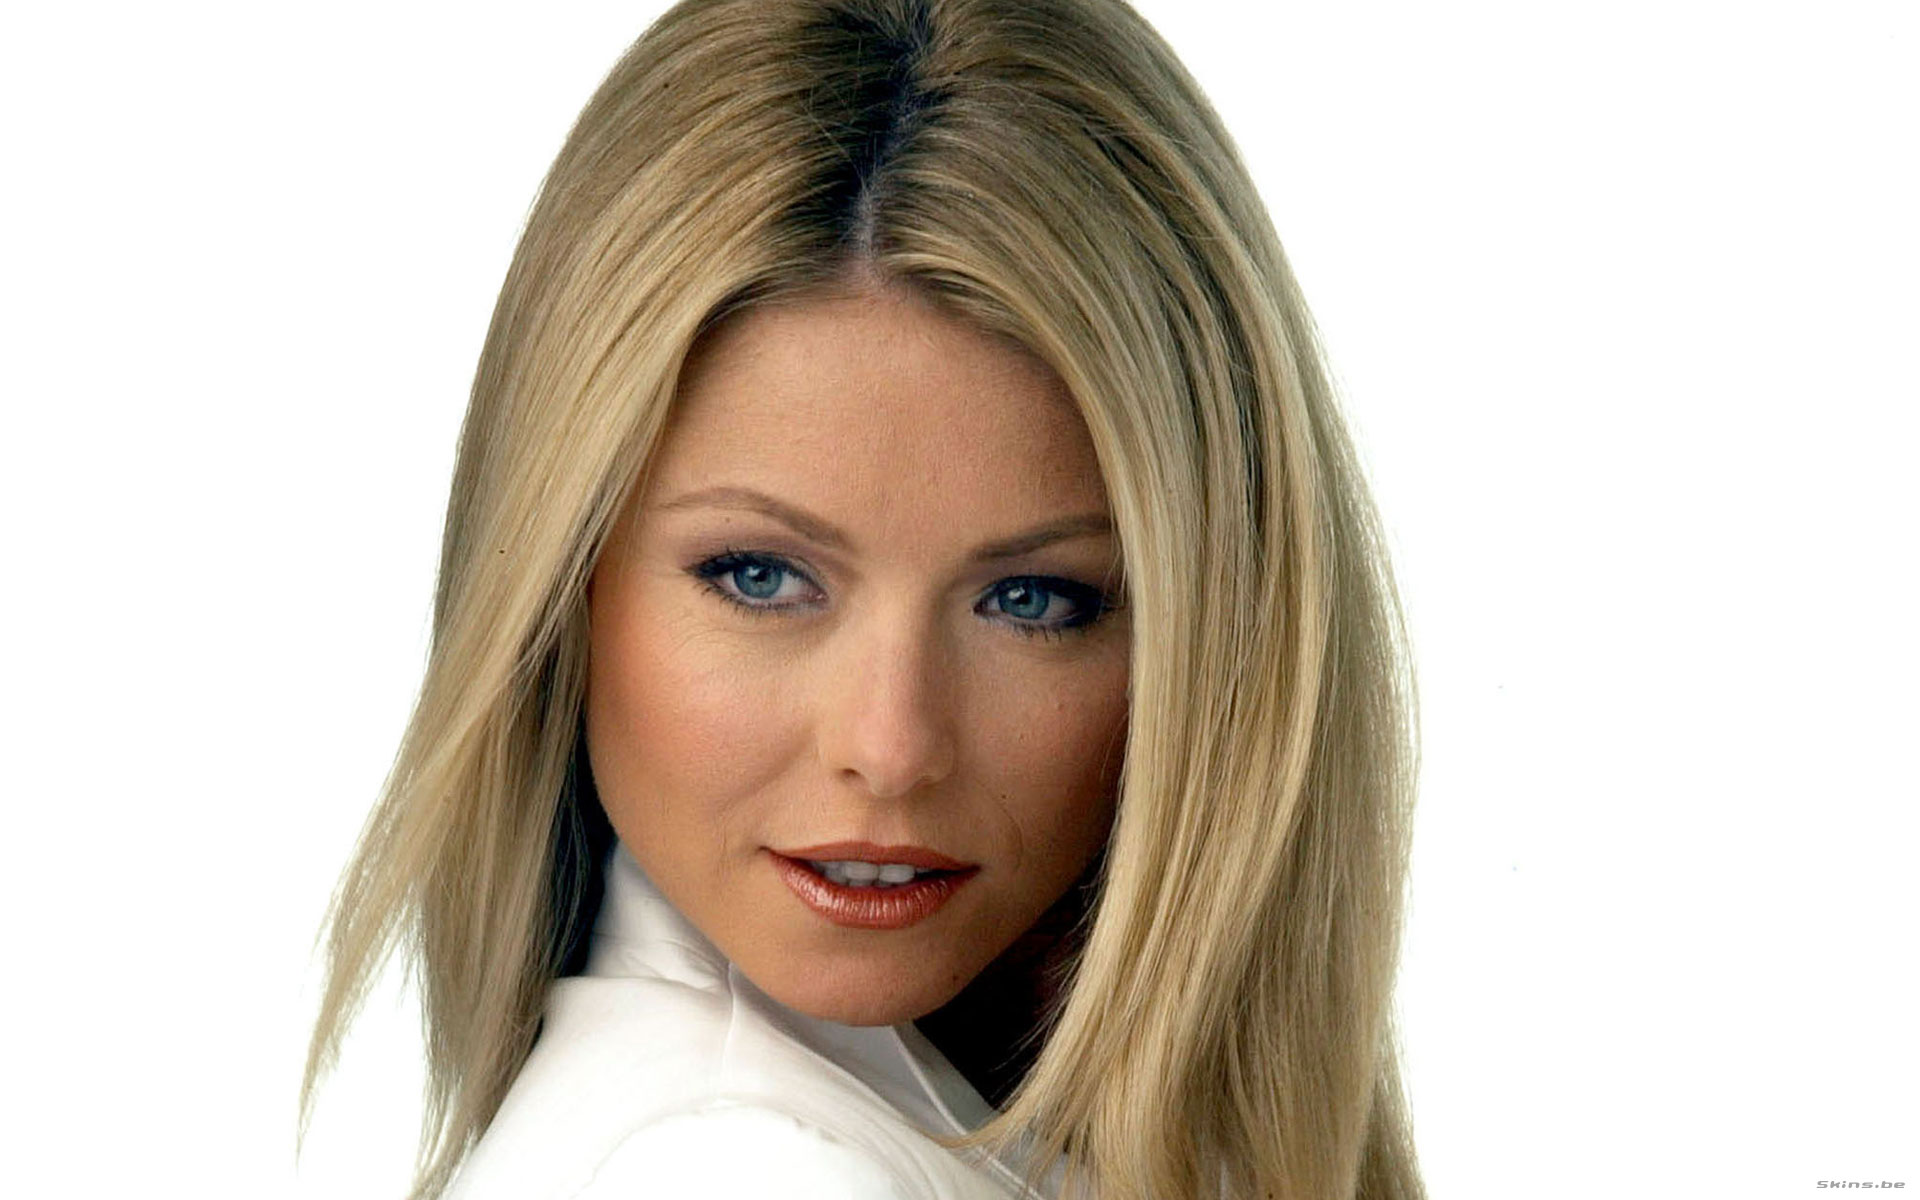 Kelly Ripa had been performing in her senior high school play The Ugly Duckling when she was approached by her current manager Cathy Parker who